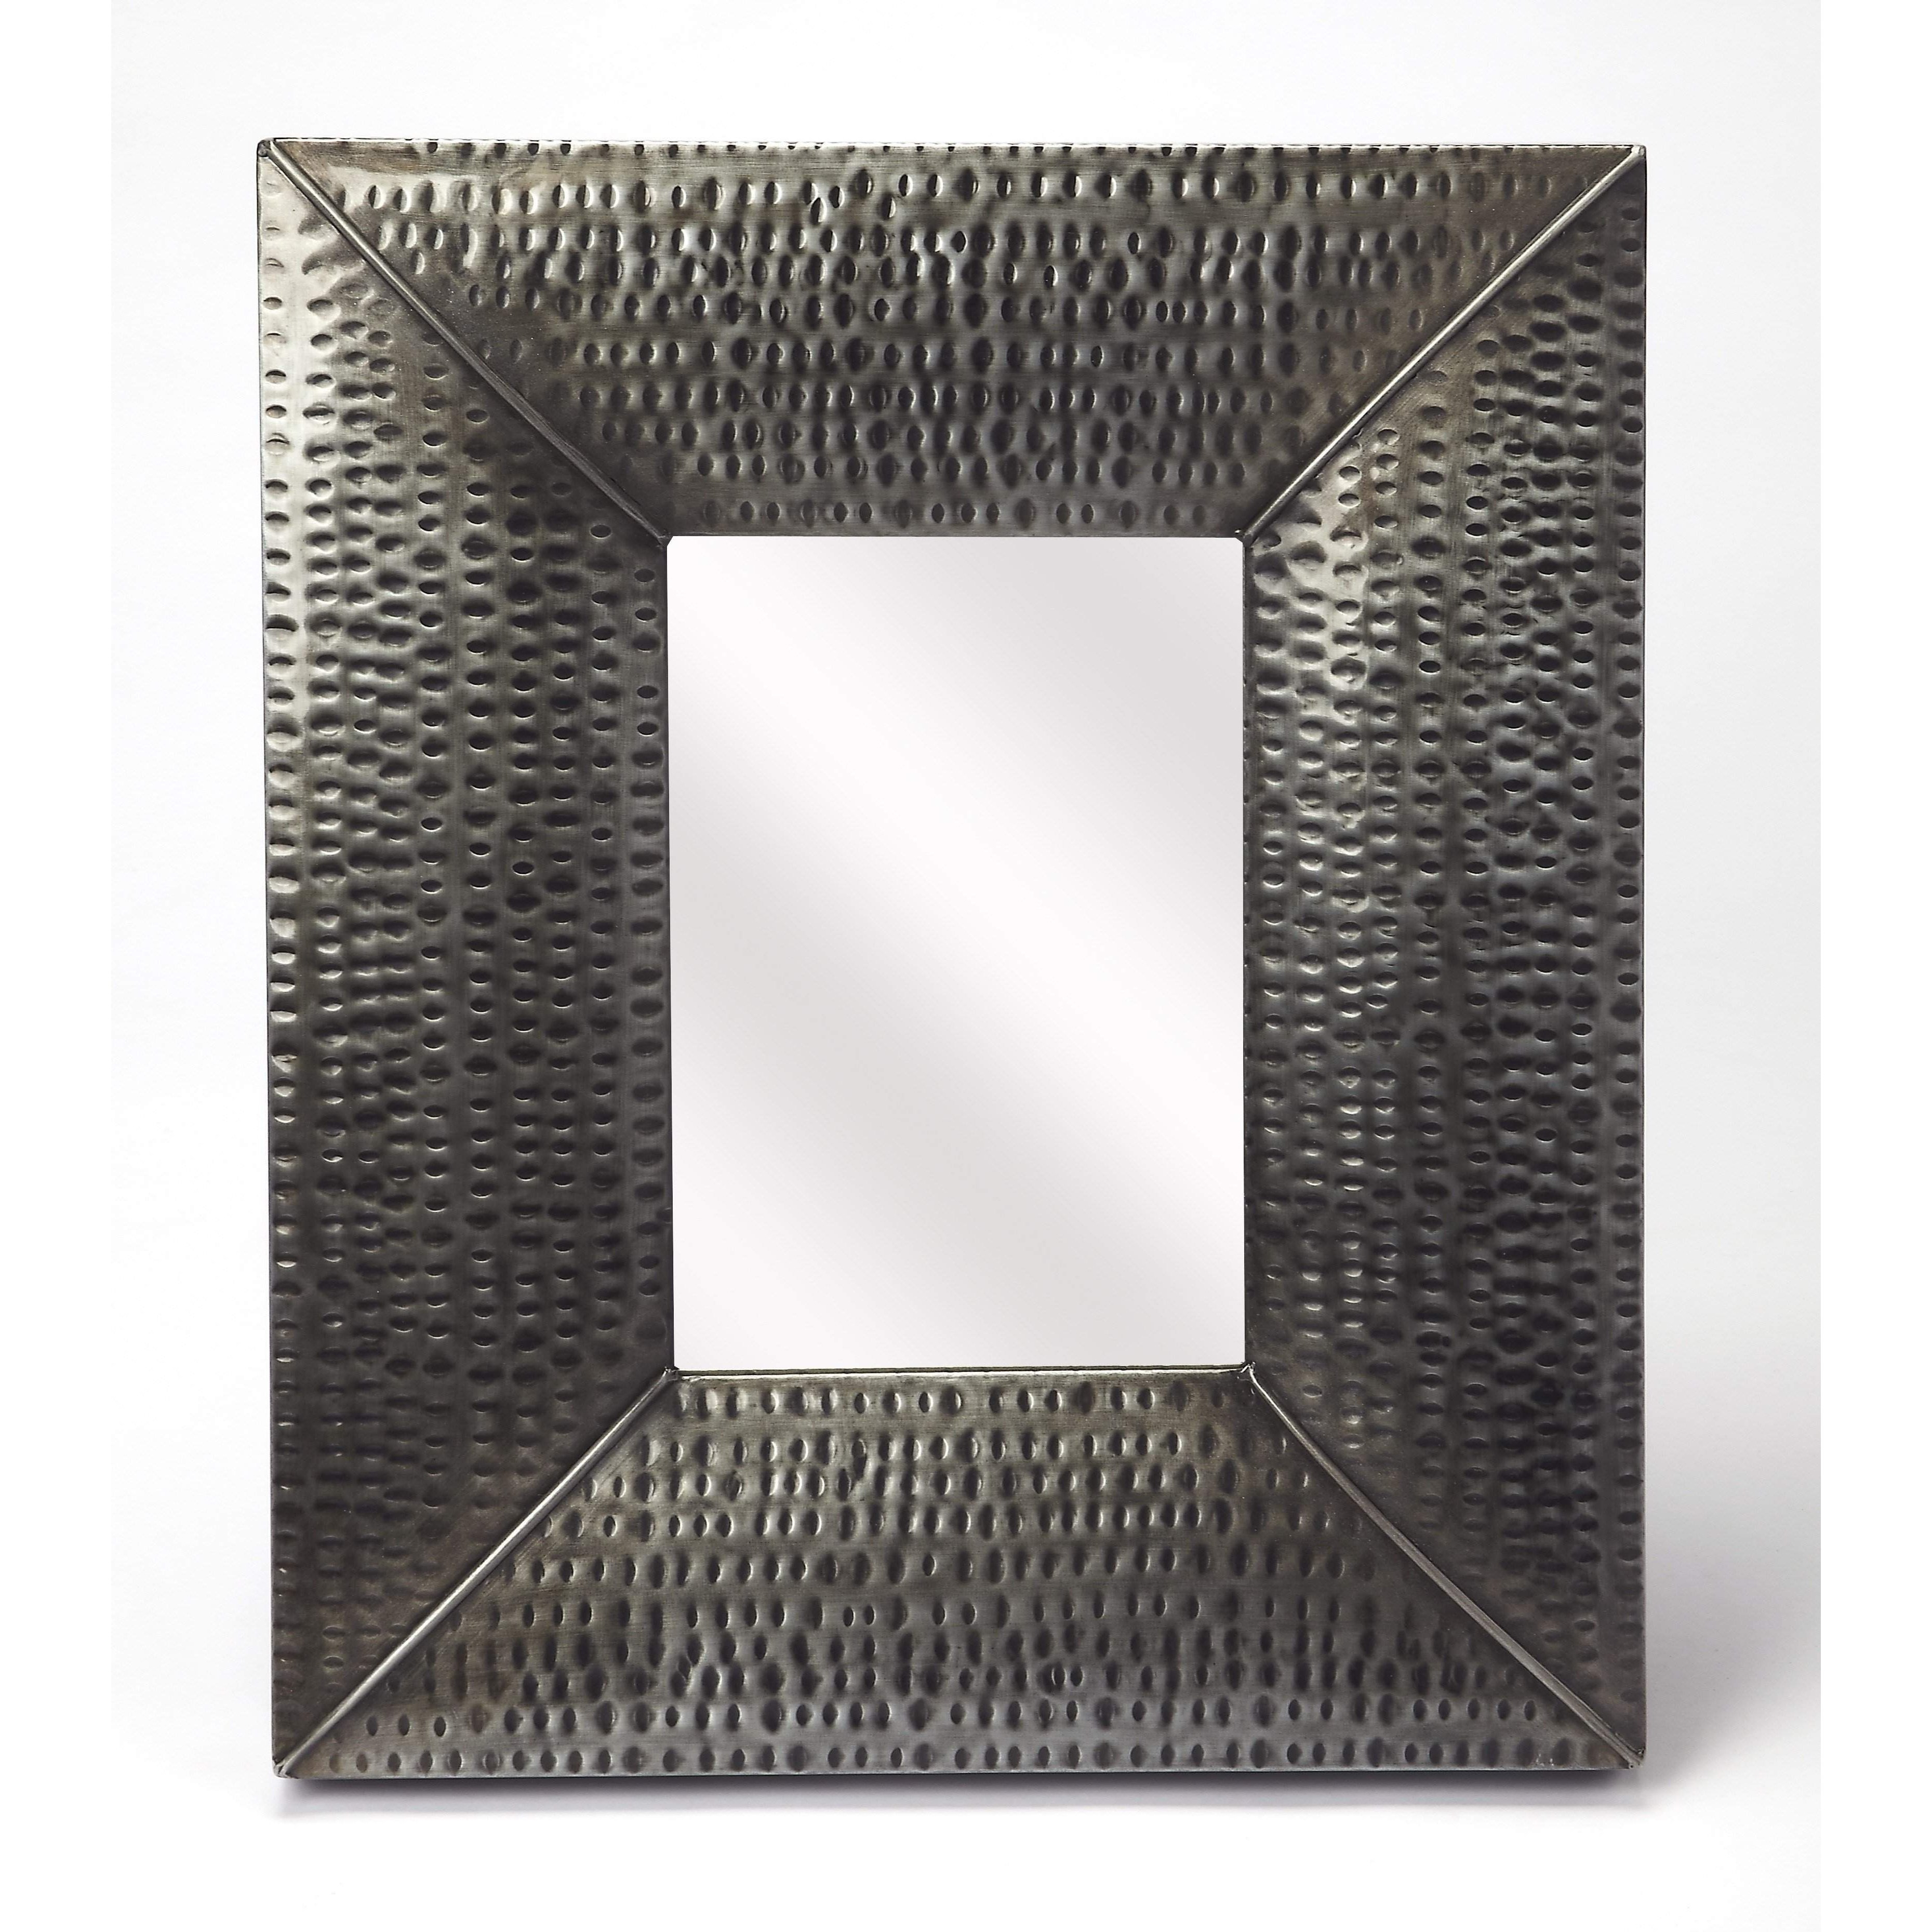 Butler Lehigh Hammered Iron Wall Mirror 4310329 | Products Within Austin Industrial Accent Mirrors (View 30 of 30)